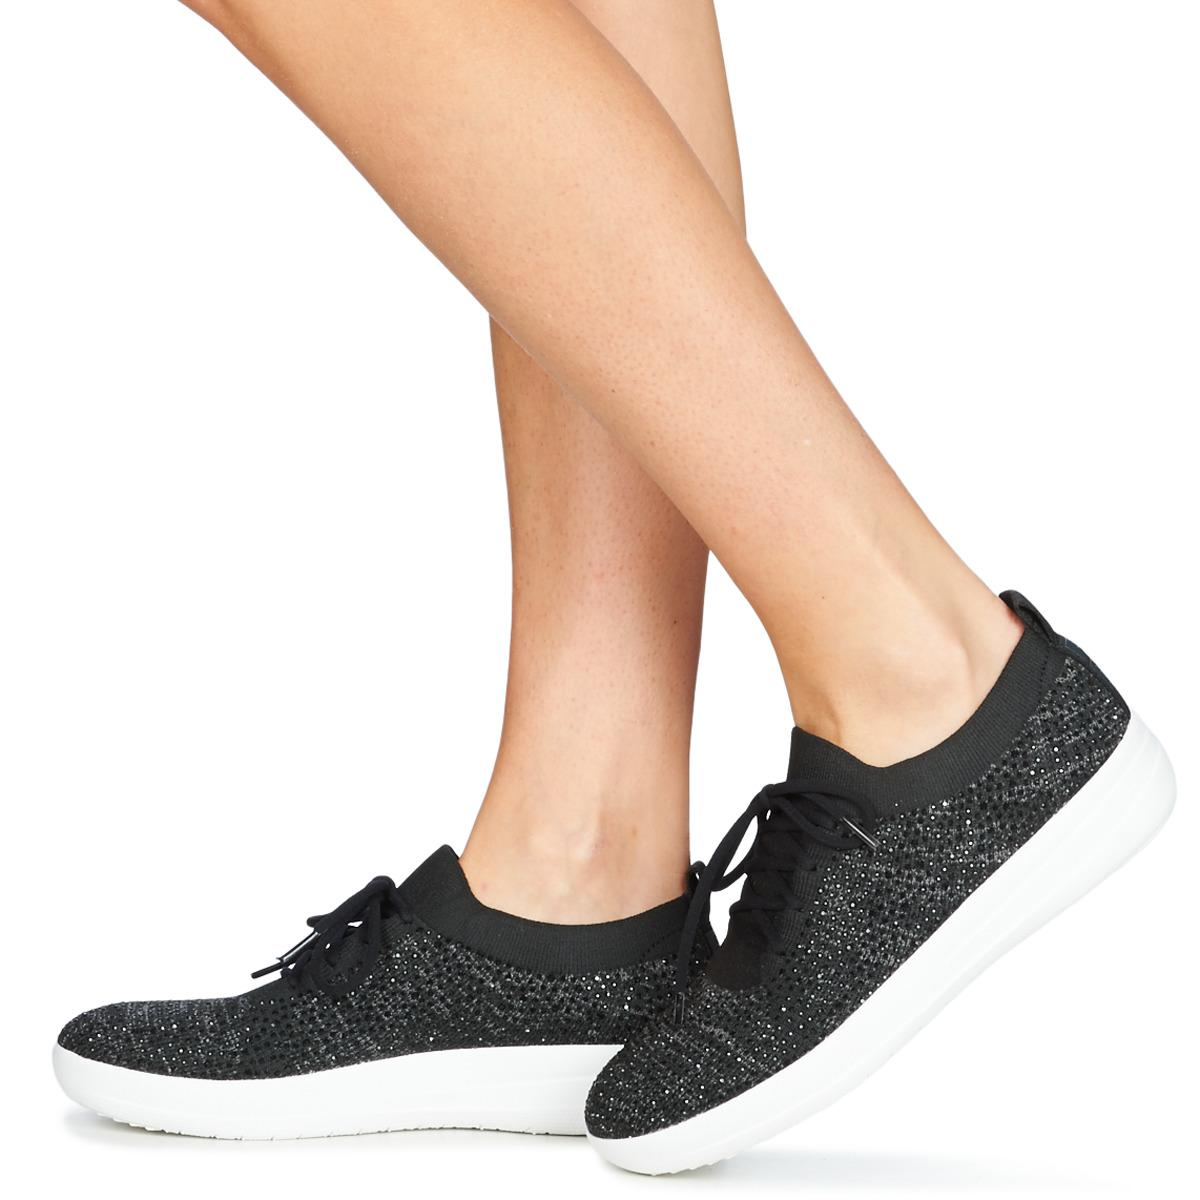 c0903eccc Fitflop F Sporty Uberknit Sneakers Crystal Women s Shoes (trainers ...